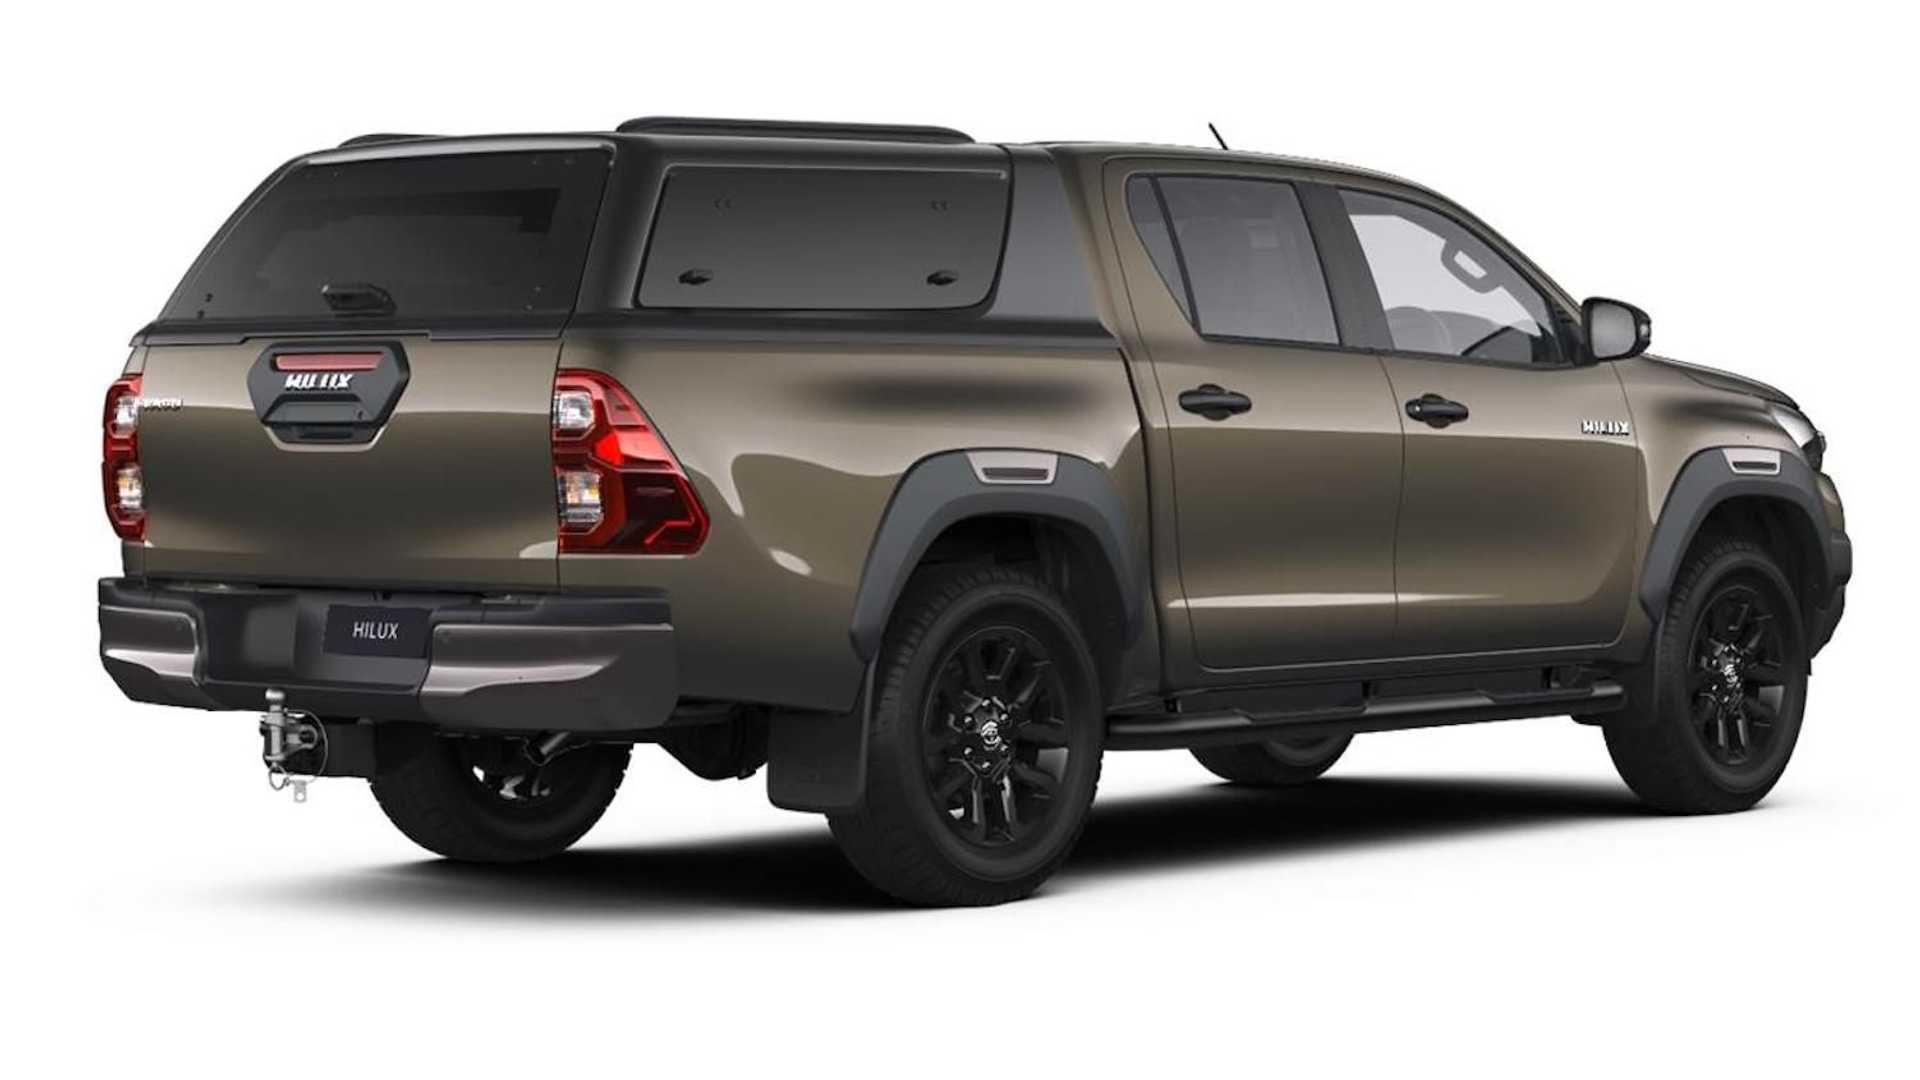 Toyota-Hilux-accessories-9